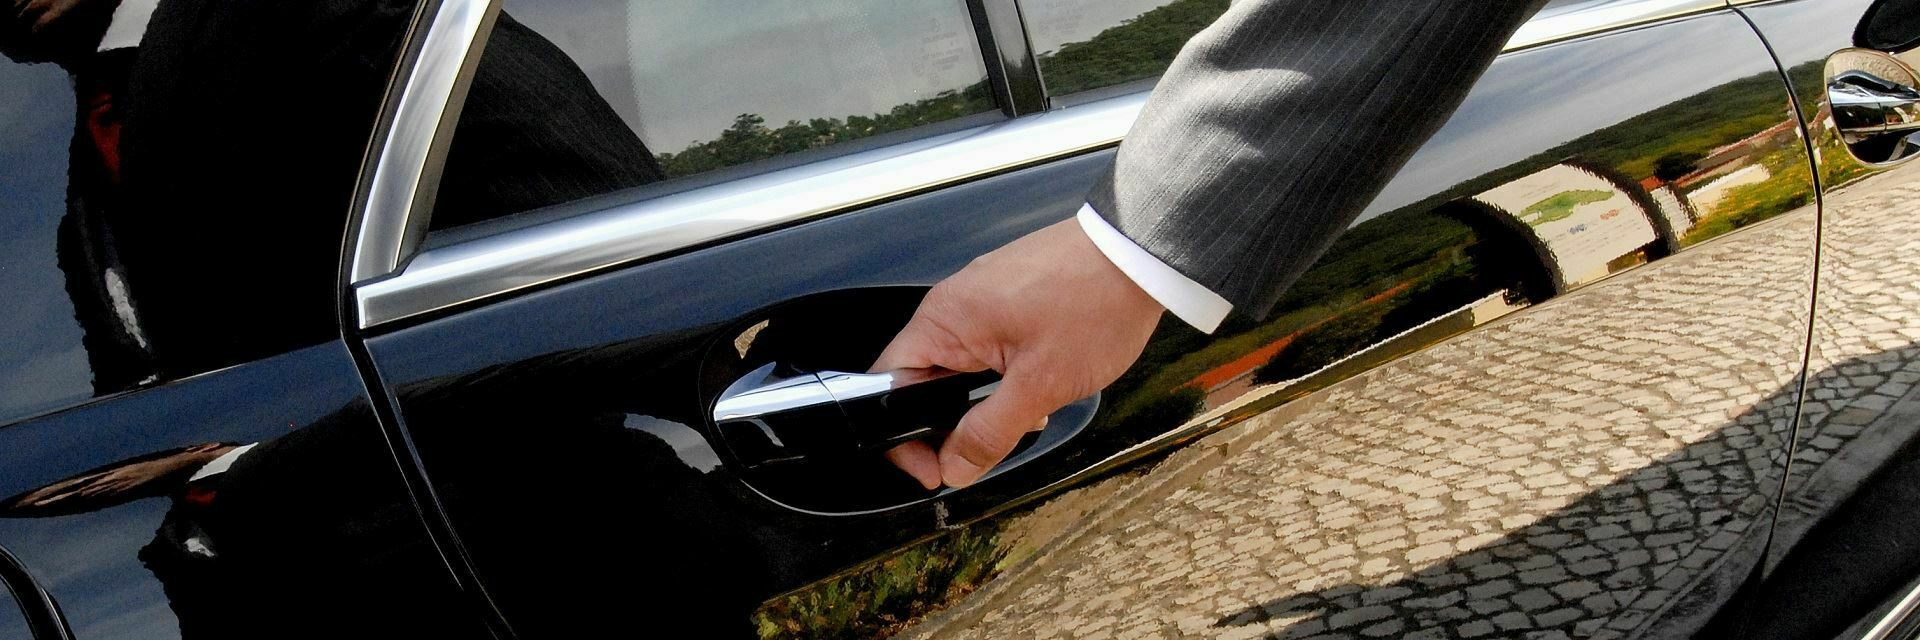 traserbas chauffeur holding the door of a limousine